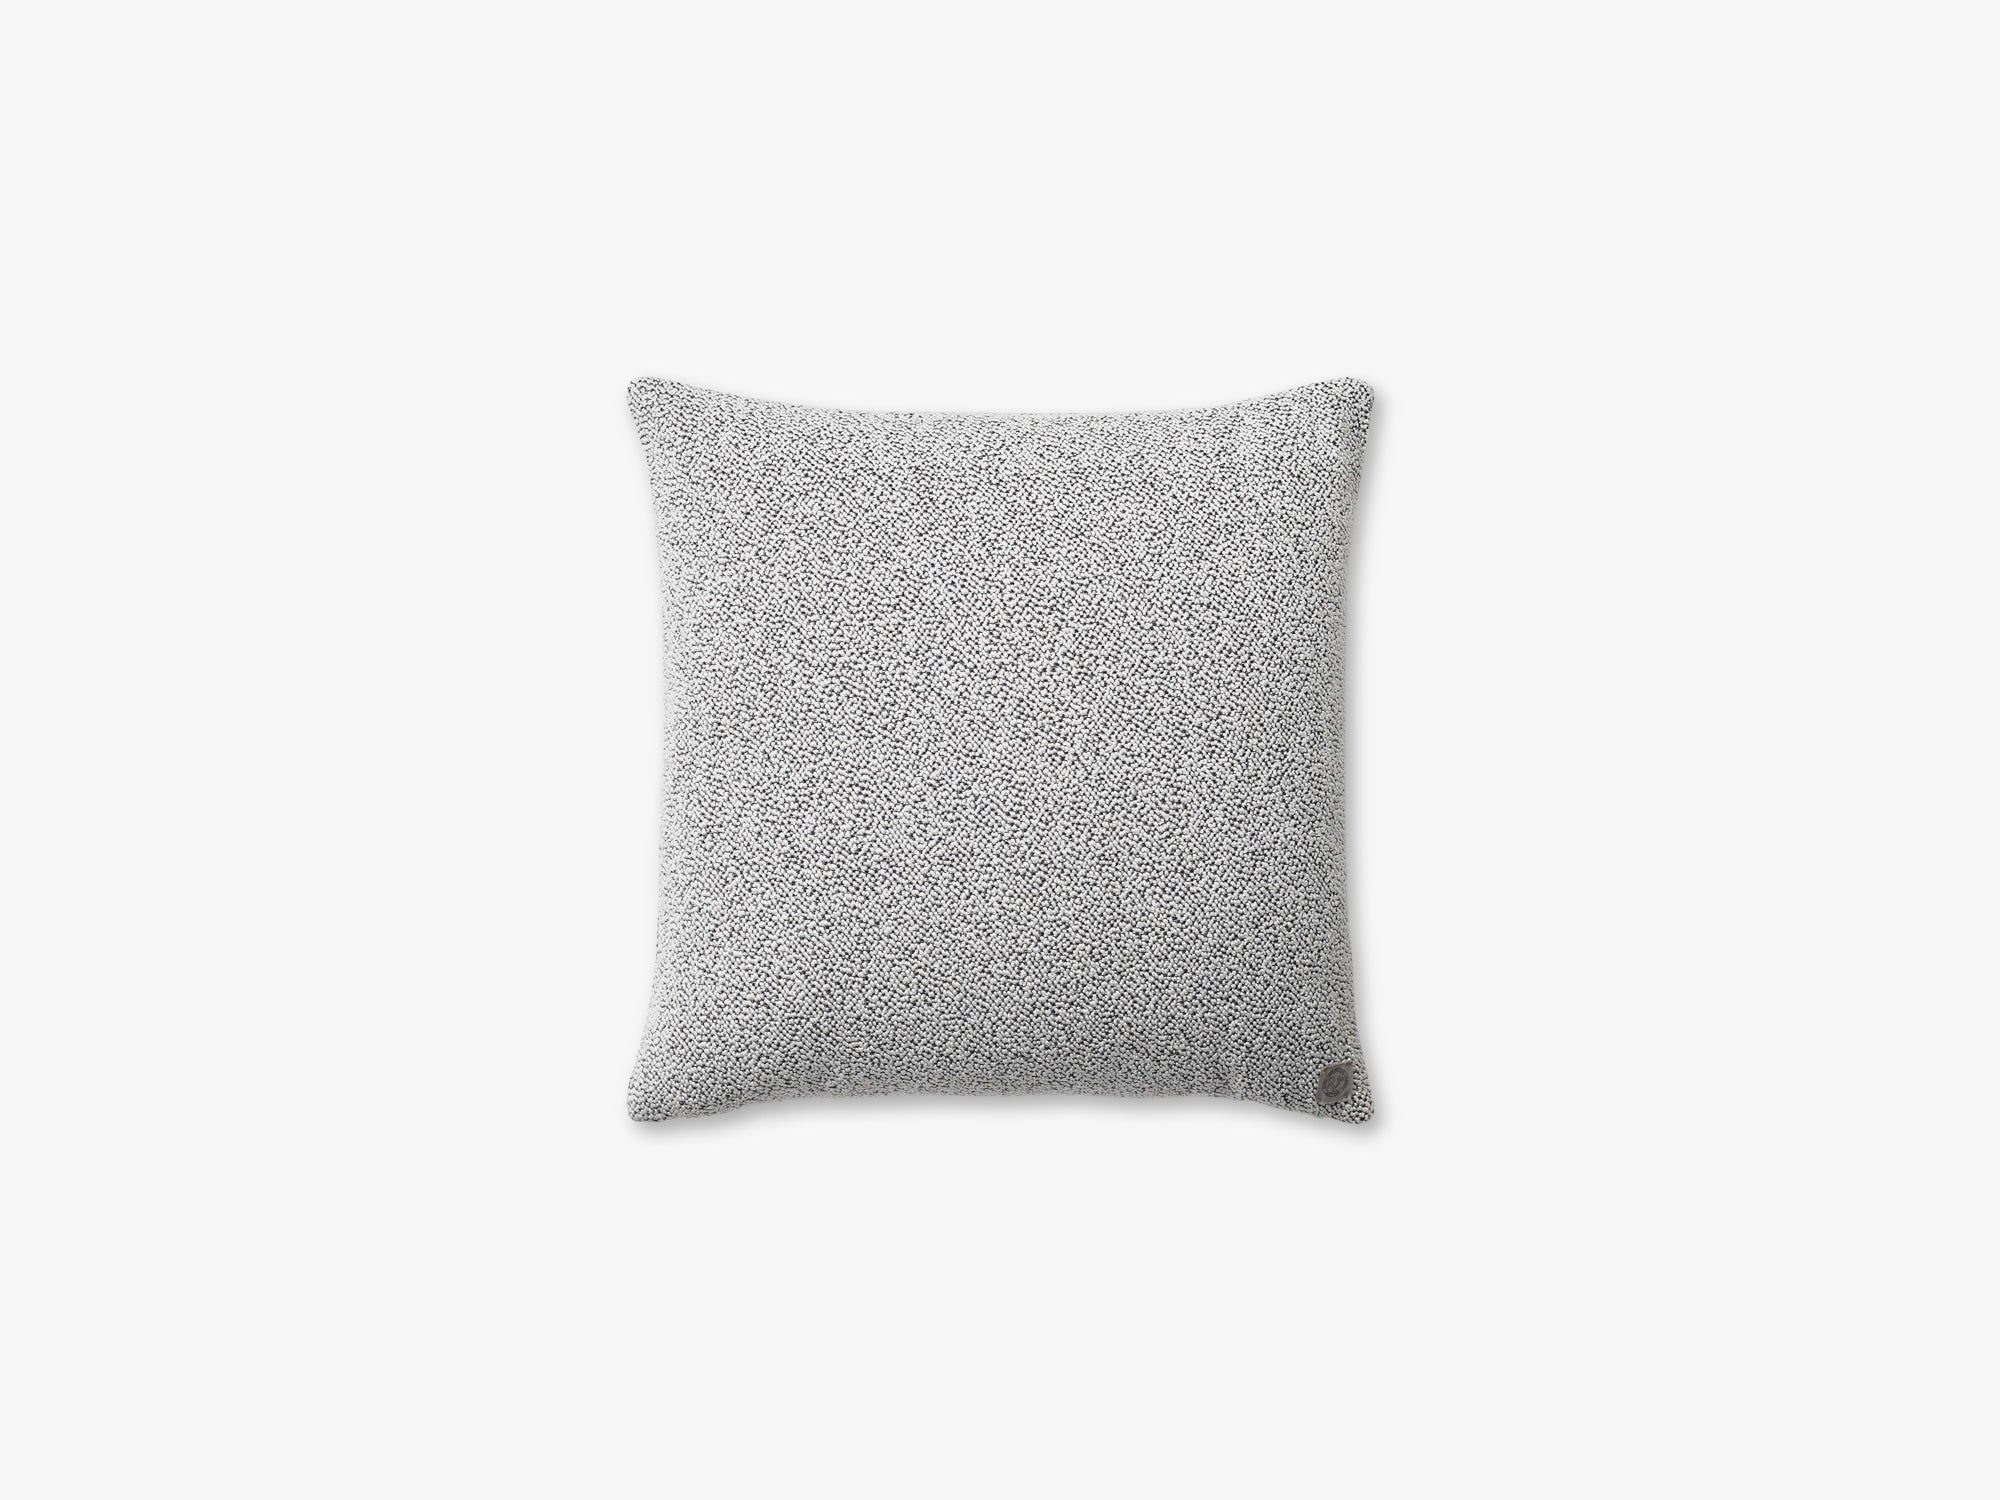 Collect Cushion SC28 - 50x50, Ivory&Granite Boucle fra &tradition